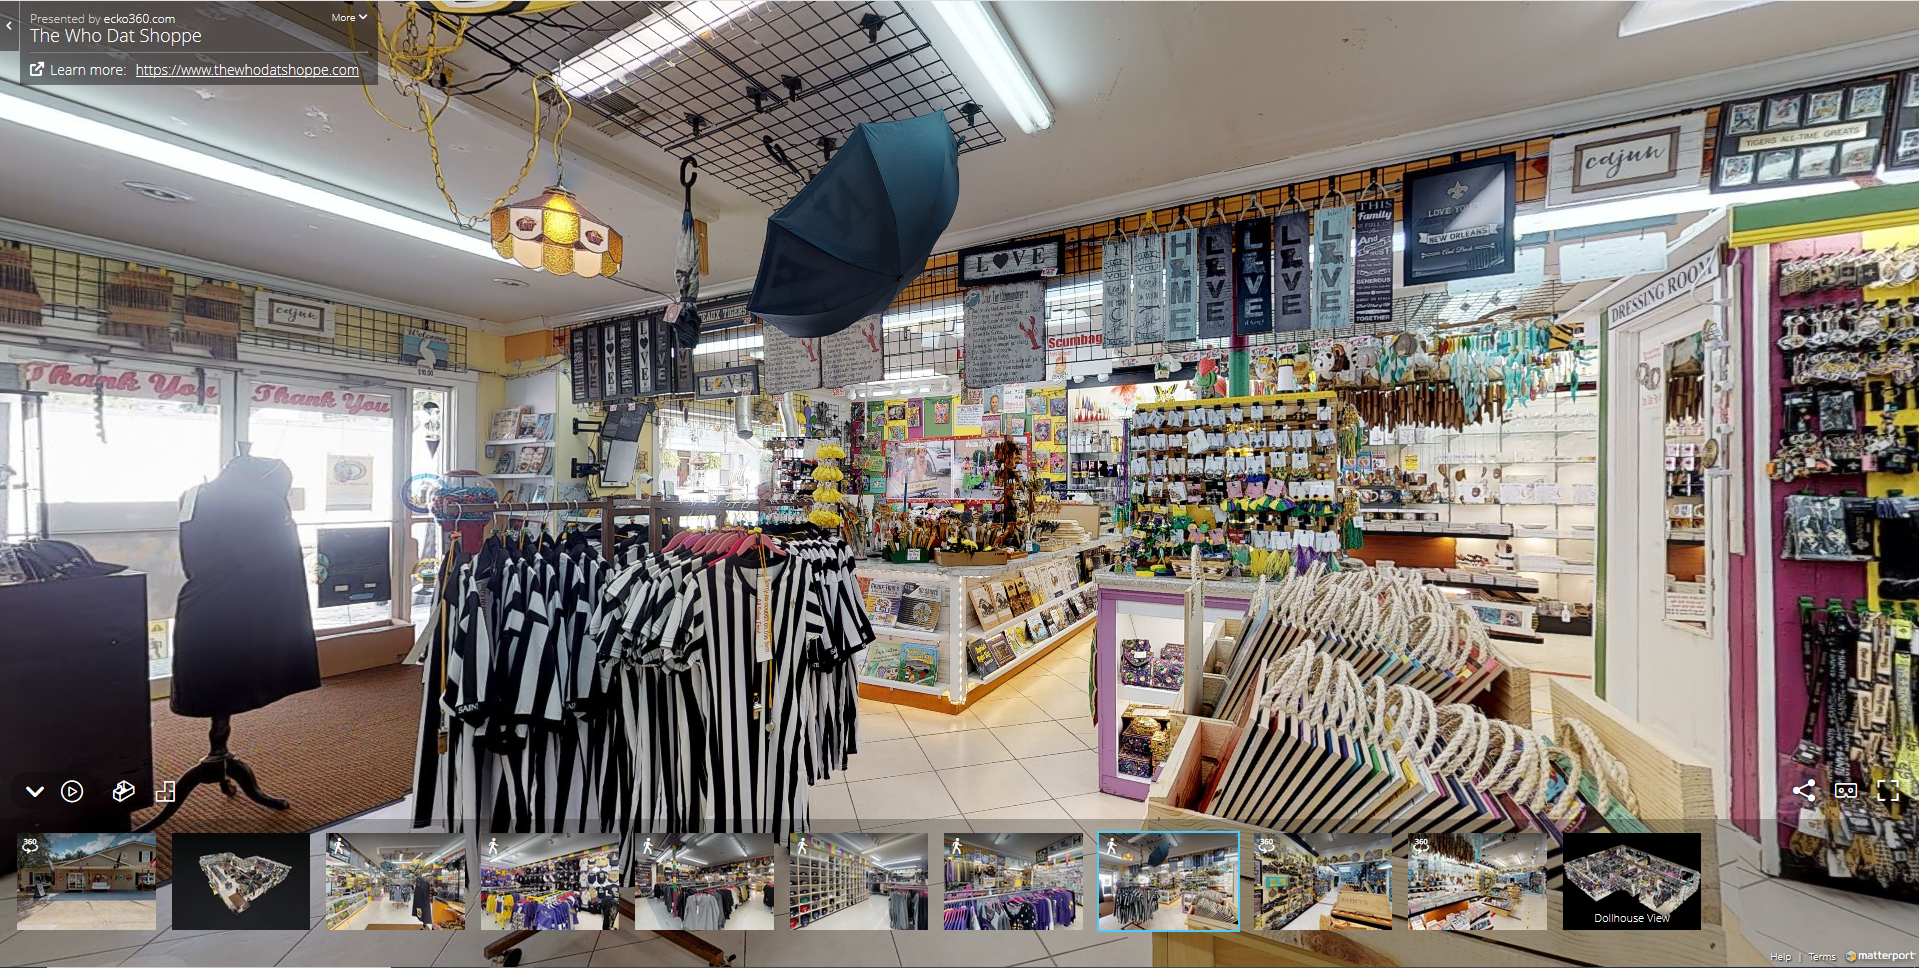 Customers can tour your business in FULL 3D!